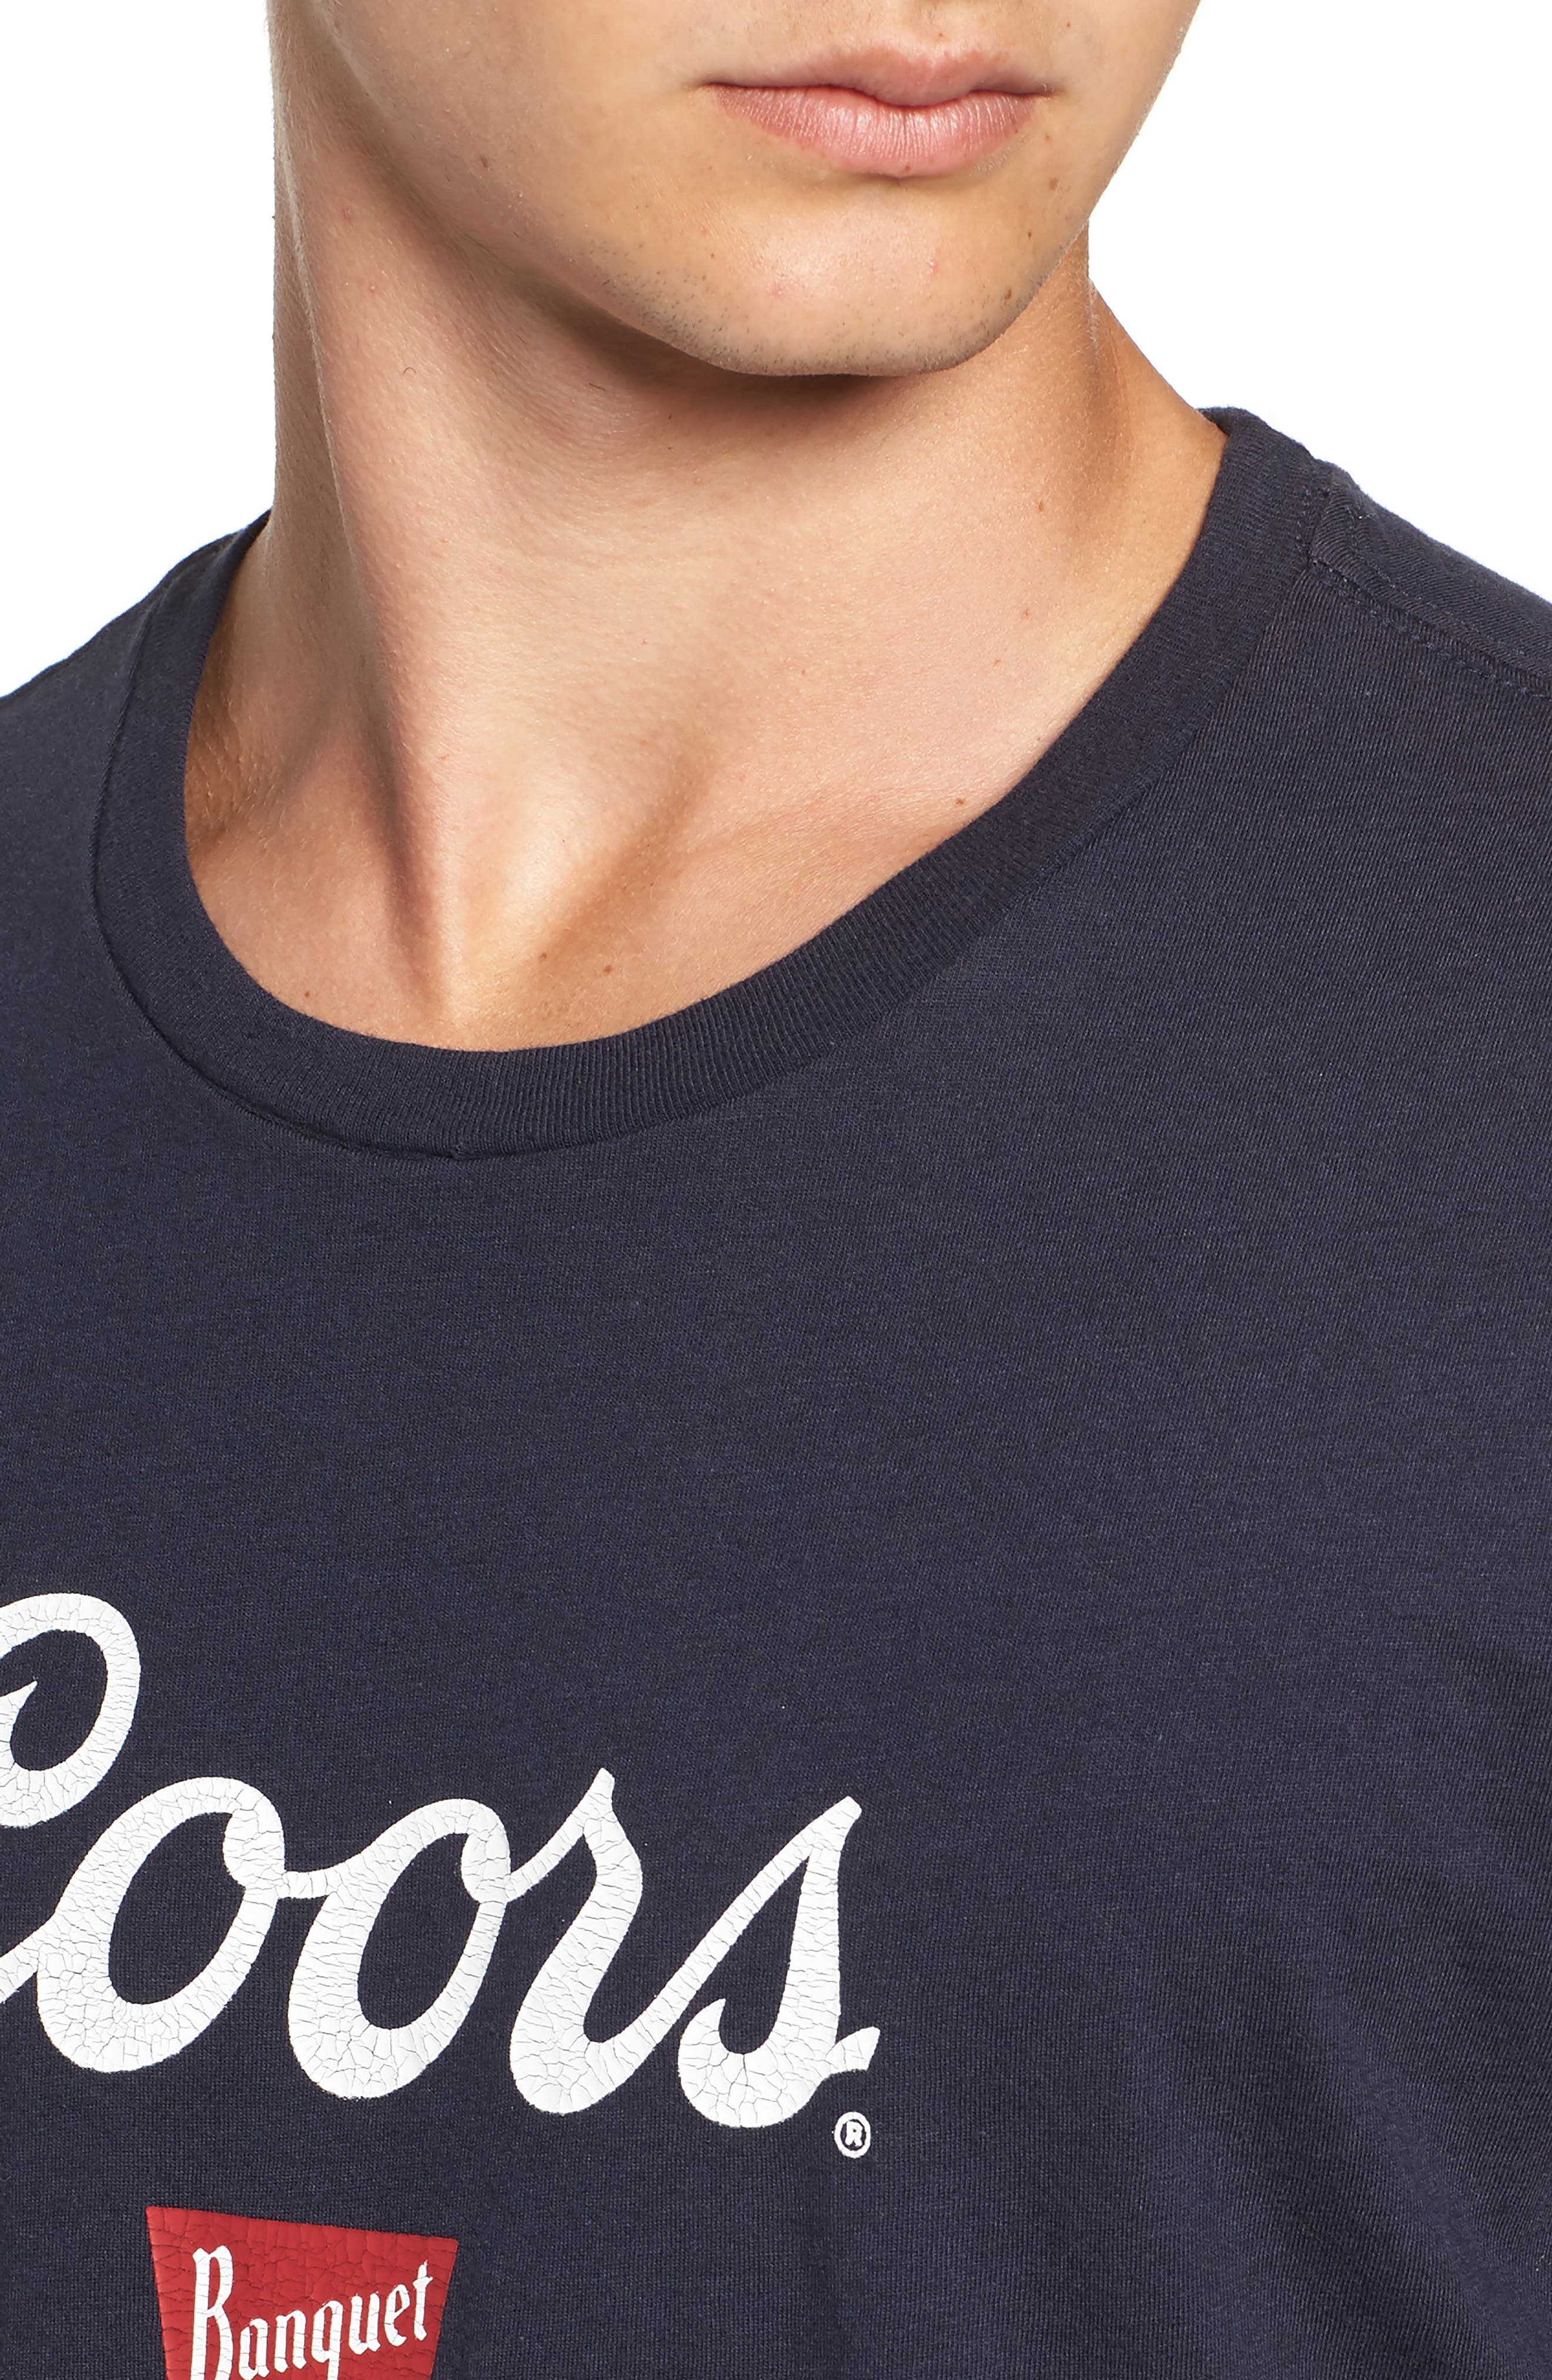 x Coors Hops T-Shirt,                             Alternate thumbnail 4, color,                             NAVY